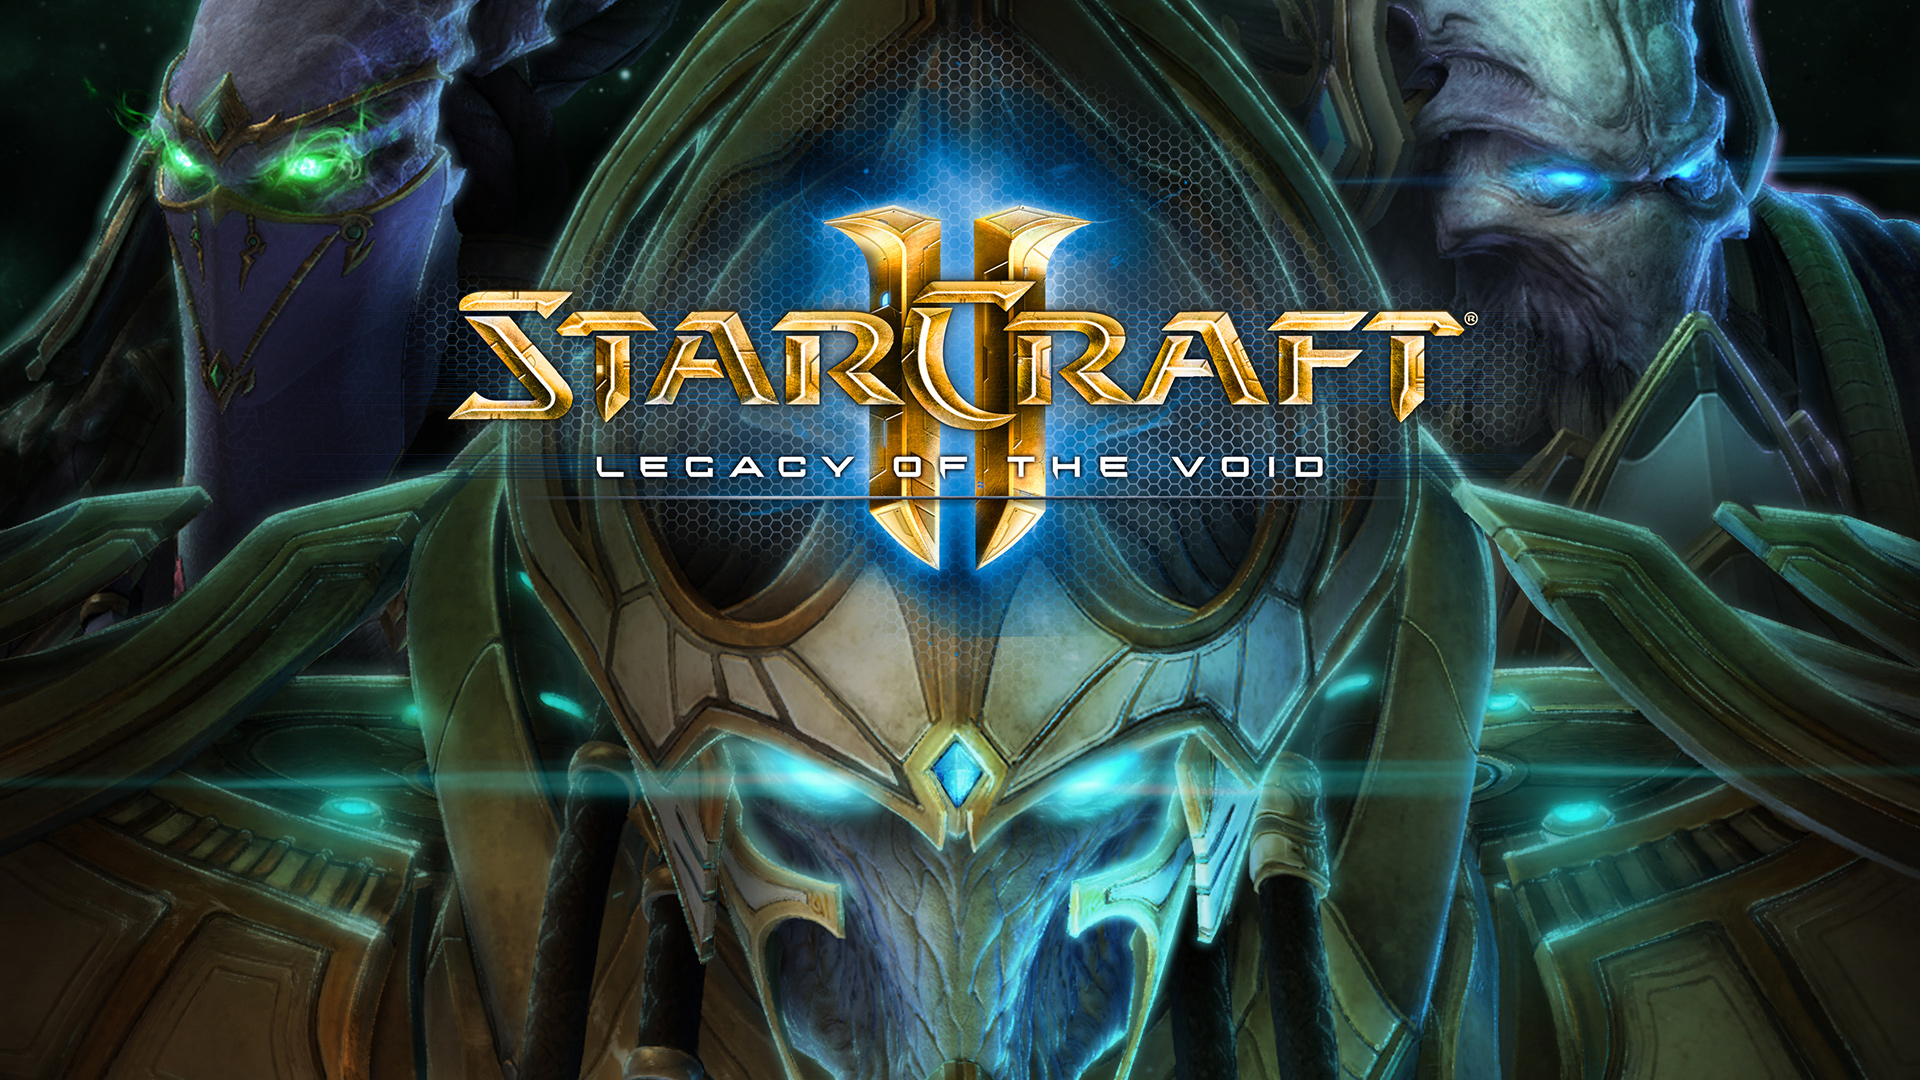 Hyperion StarCraft II wallpaper Game wallpapers